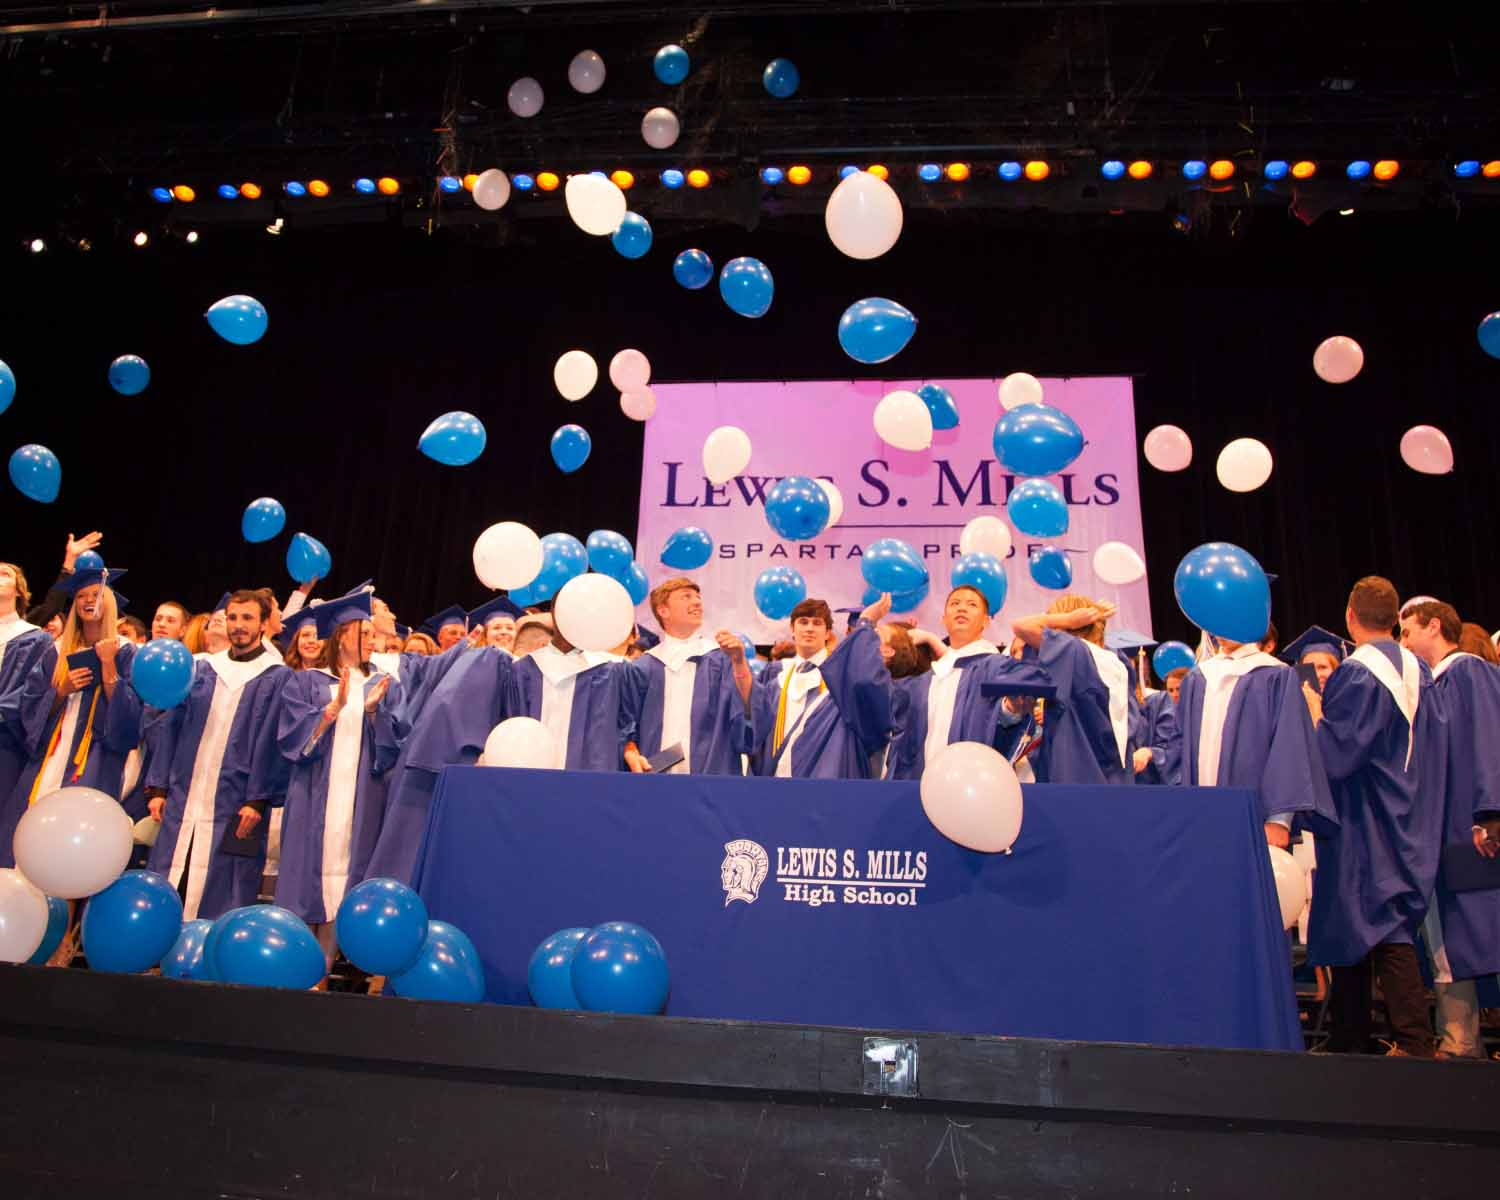 Students at the 2016 graduation wore blue gowns, marking the second or third year of a more gender-neutral approach to graduation garb at Mills. School officials and students revisited graduation gown colors this spring before deciding to maintain the all-blue gowns for seniors this June.